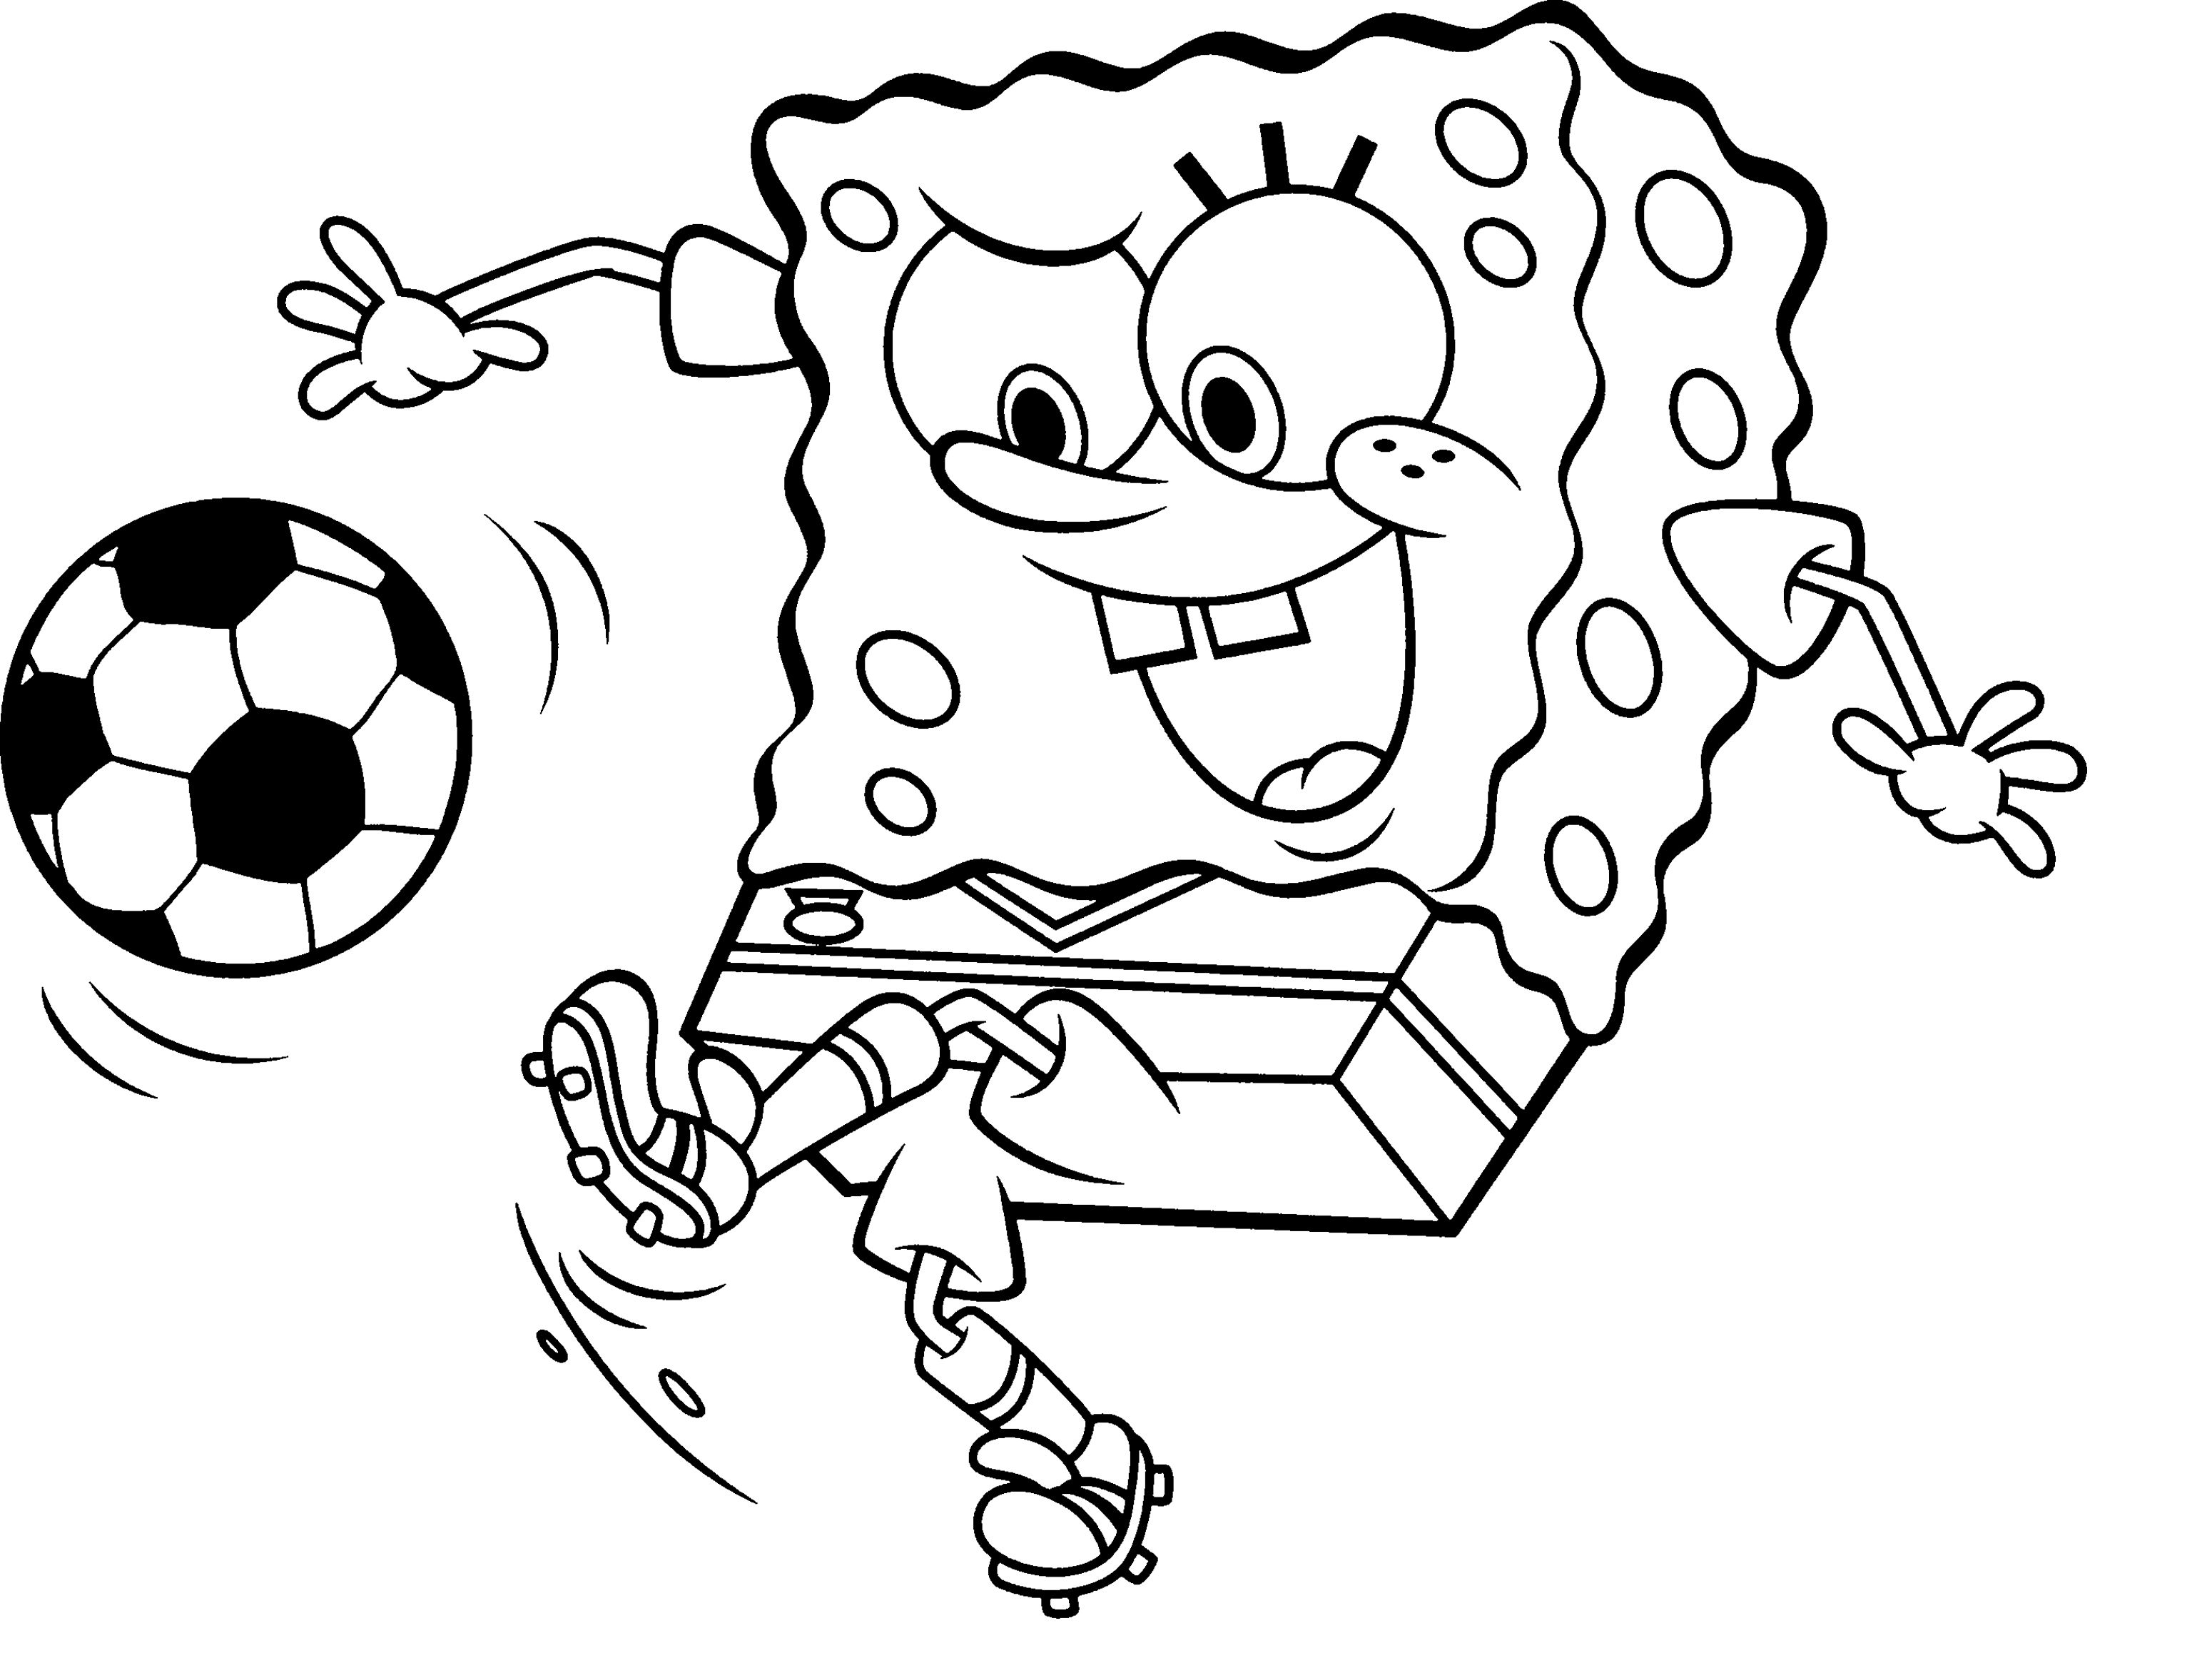 Collection Of Free Spongebob Chocolate Coloring Page From All Over